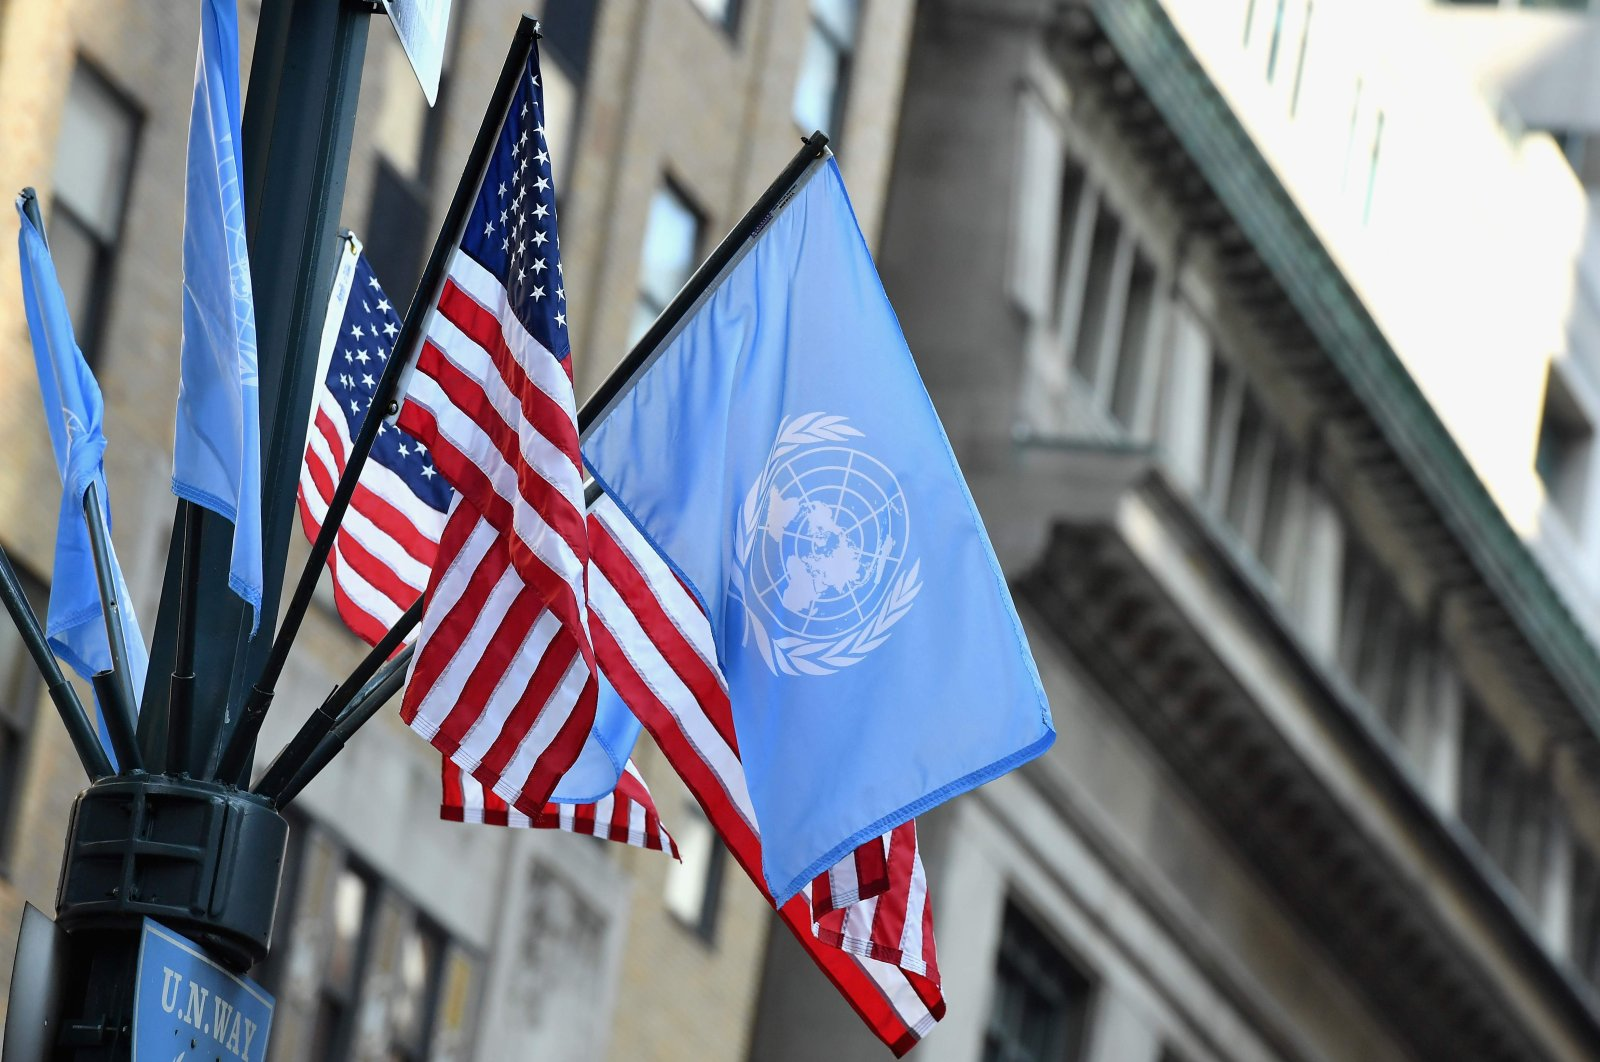 Flags of the United Nations and the United States are seen in New York City, Sept. 23, 2019. (AFP Photo)